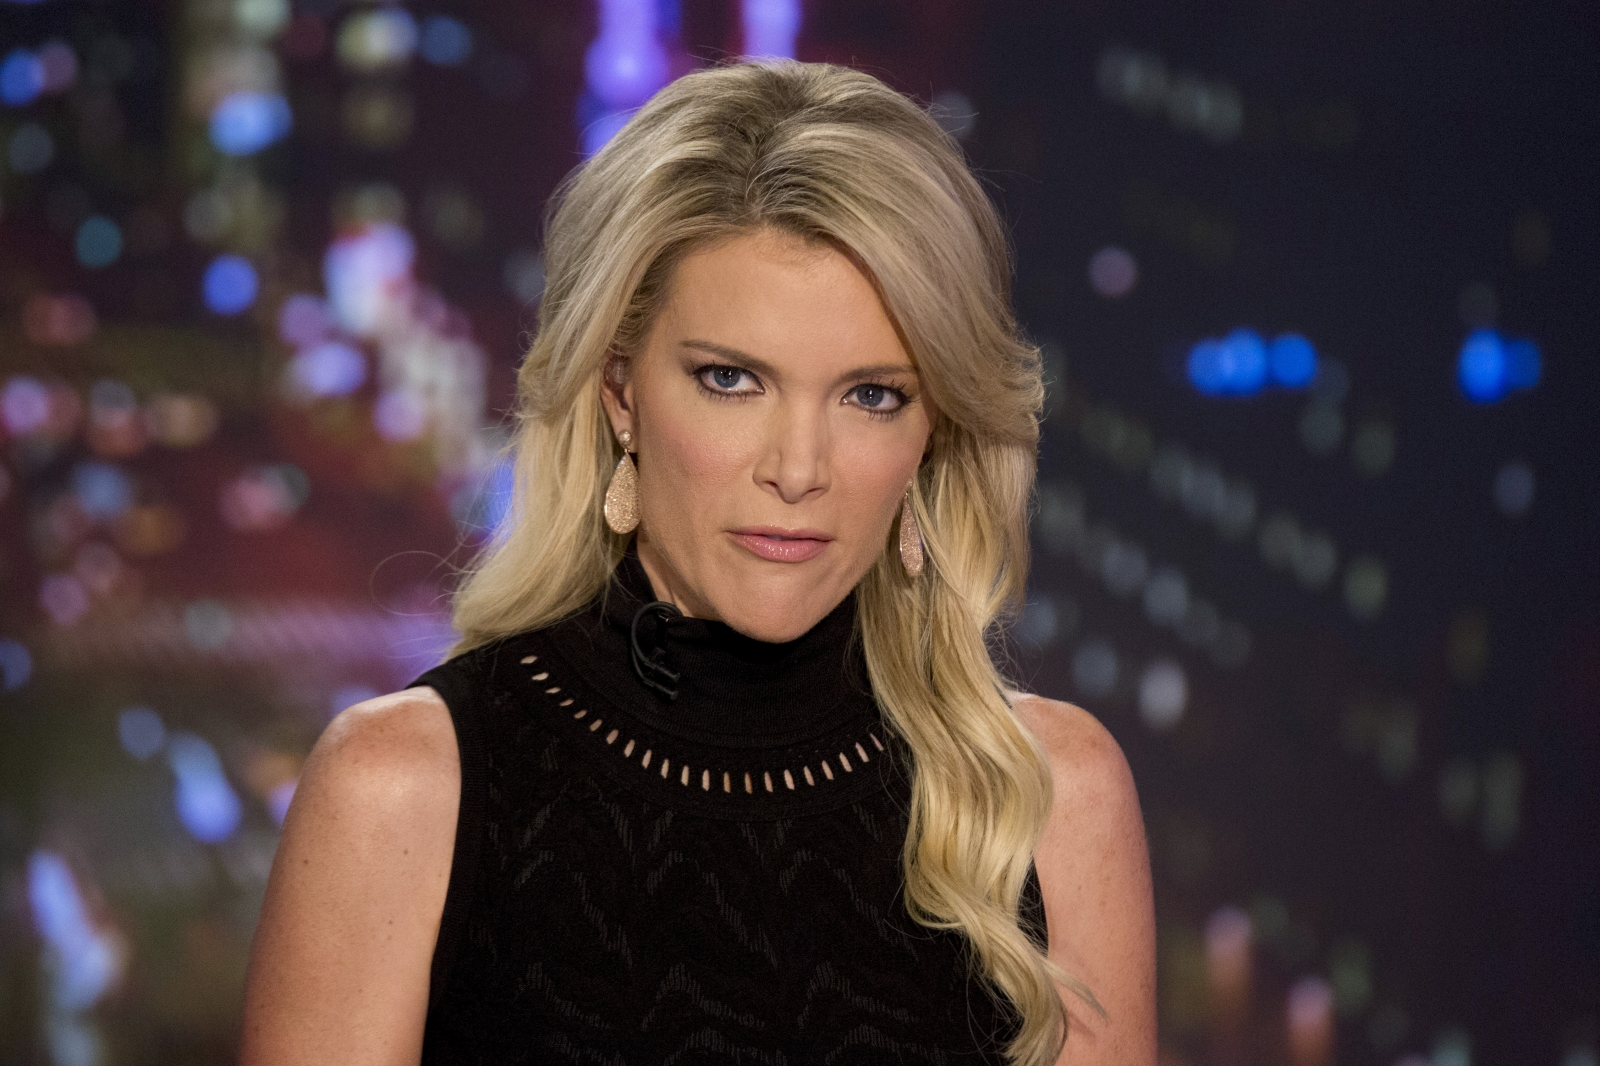 Megyn Kelly Fox News star